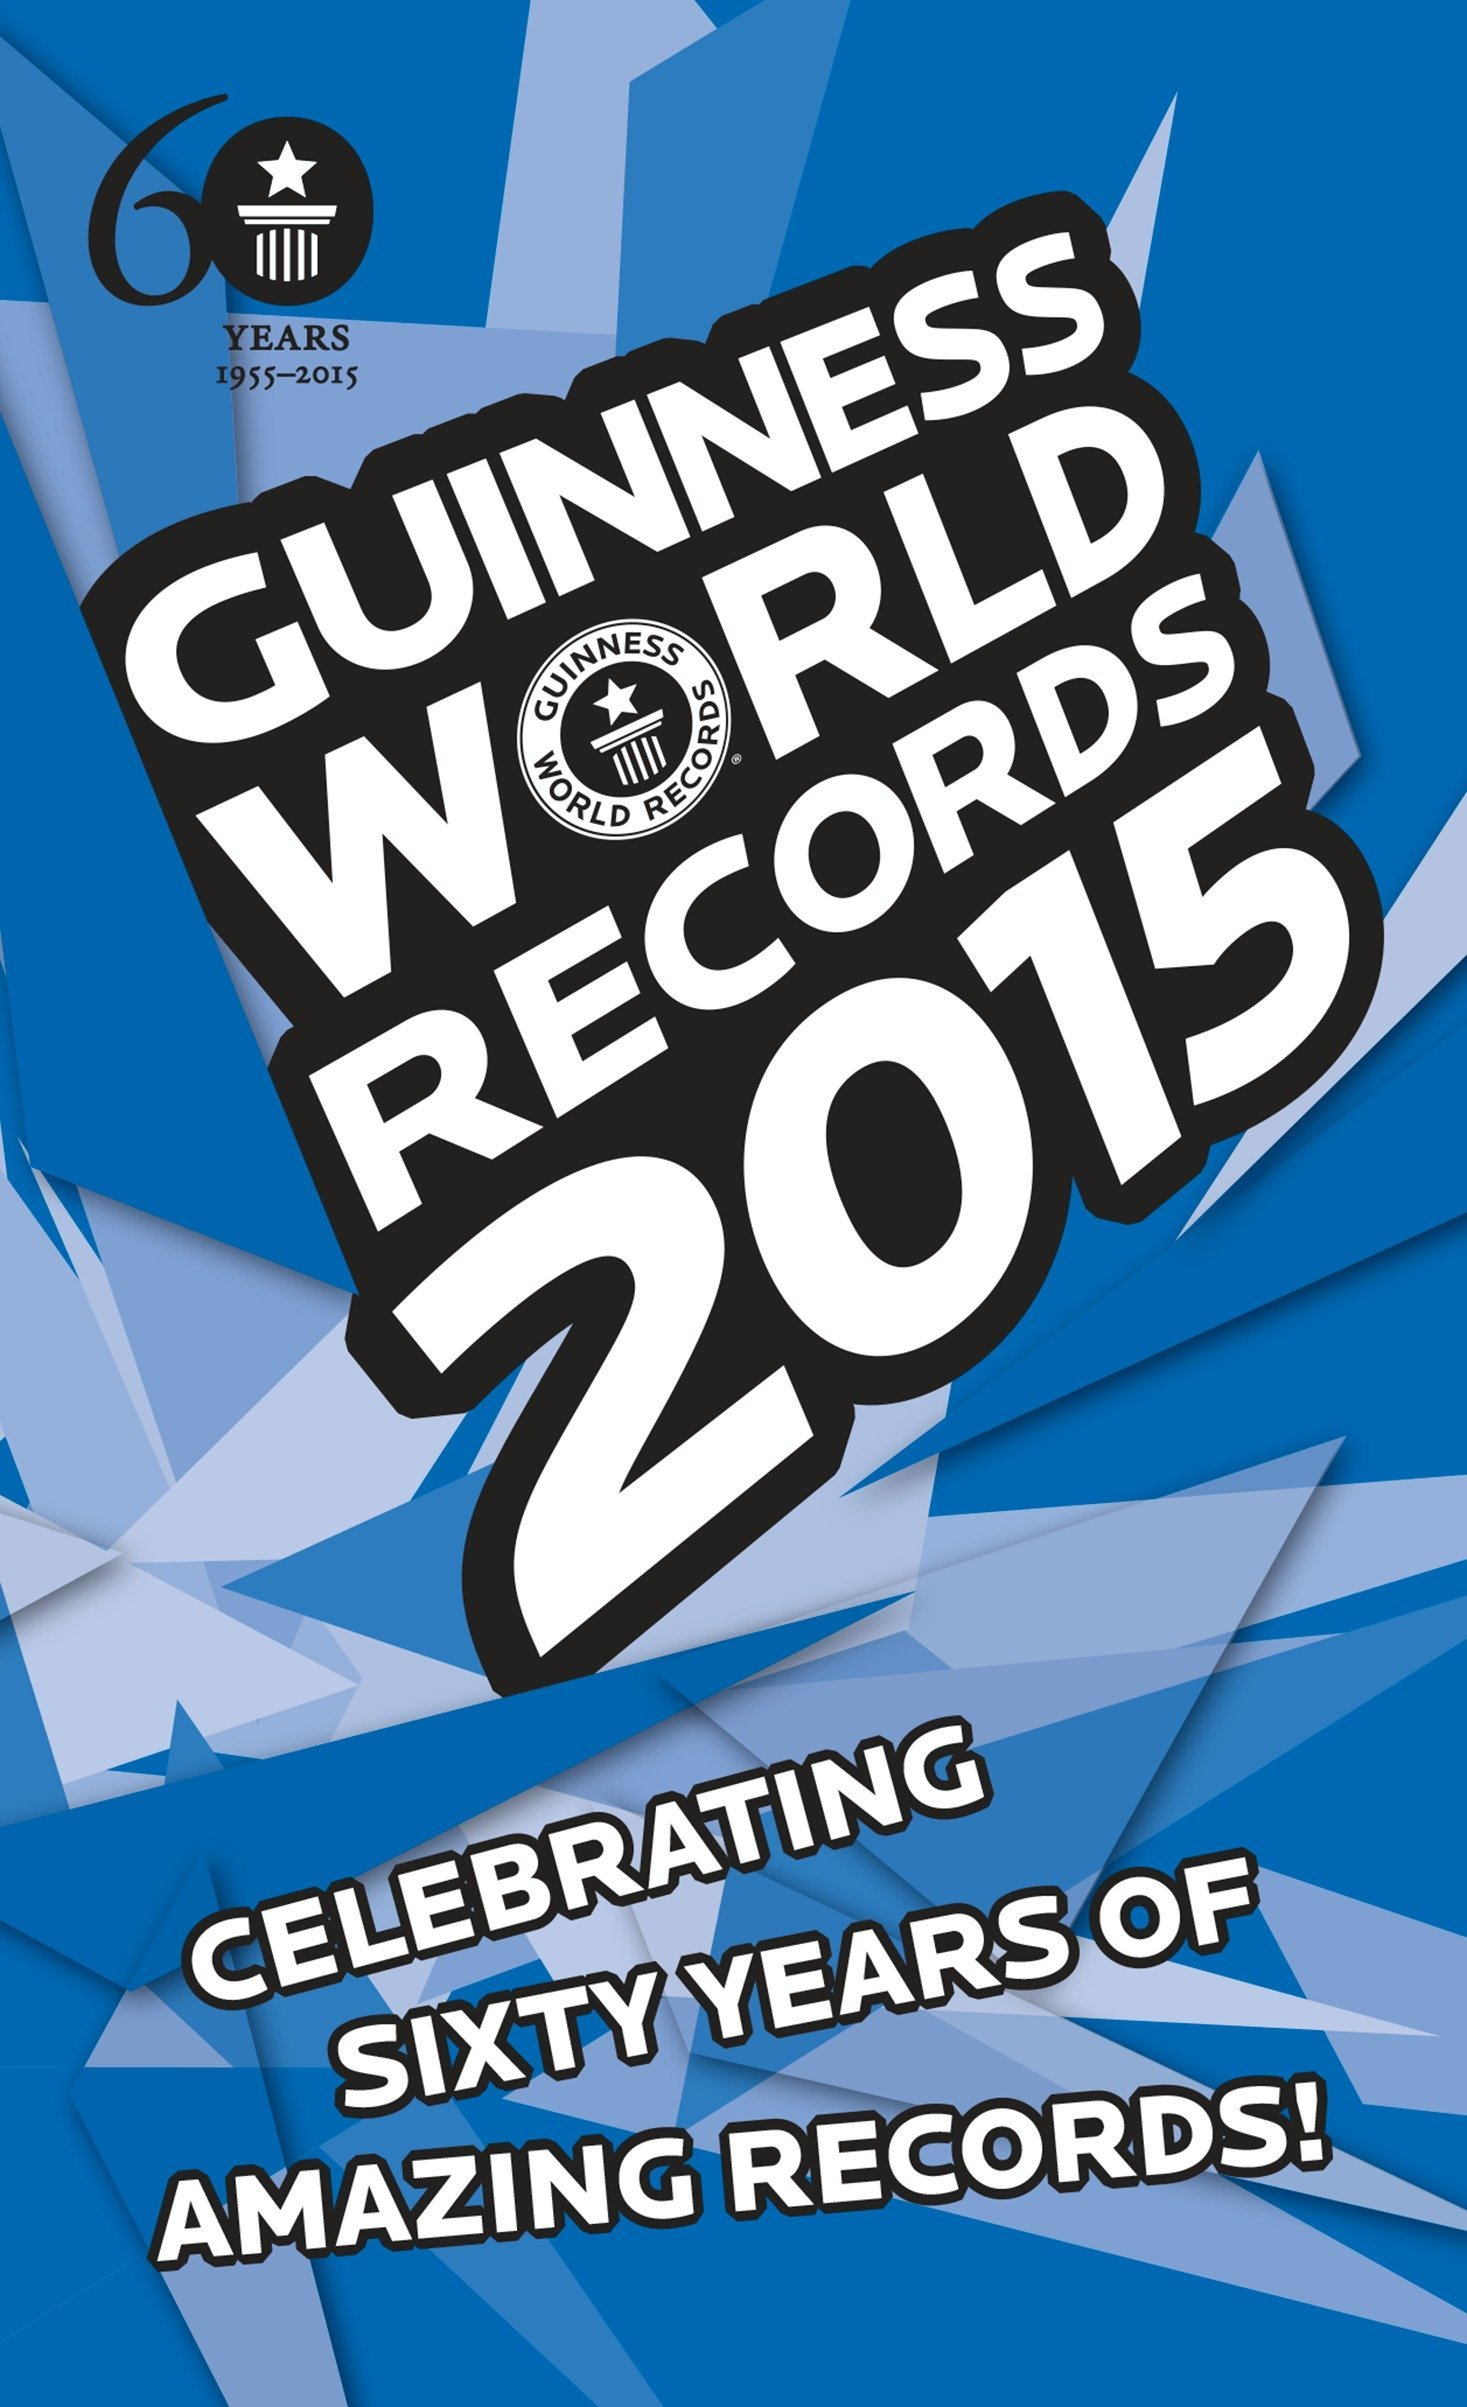 Guinness world records indefinitely not